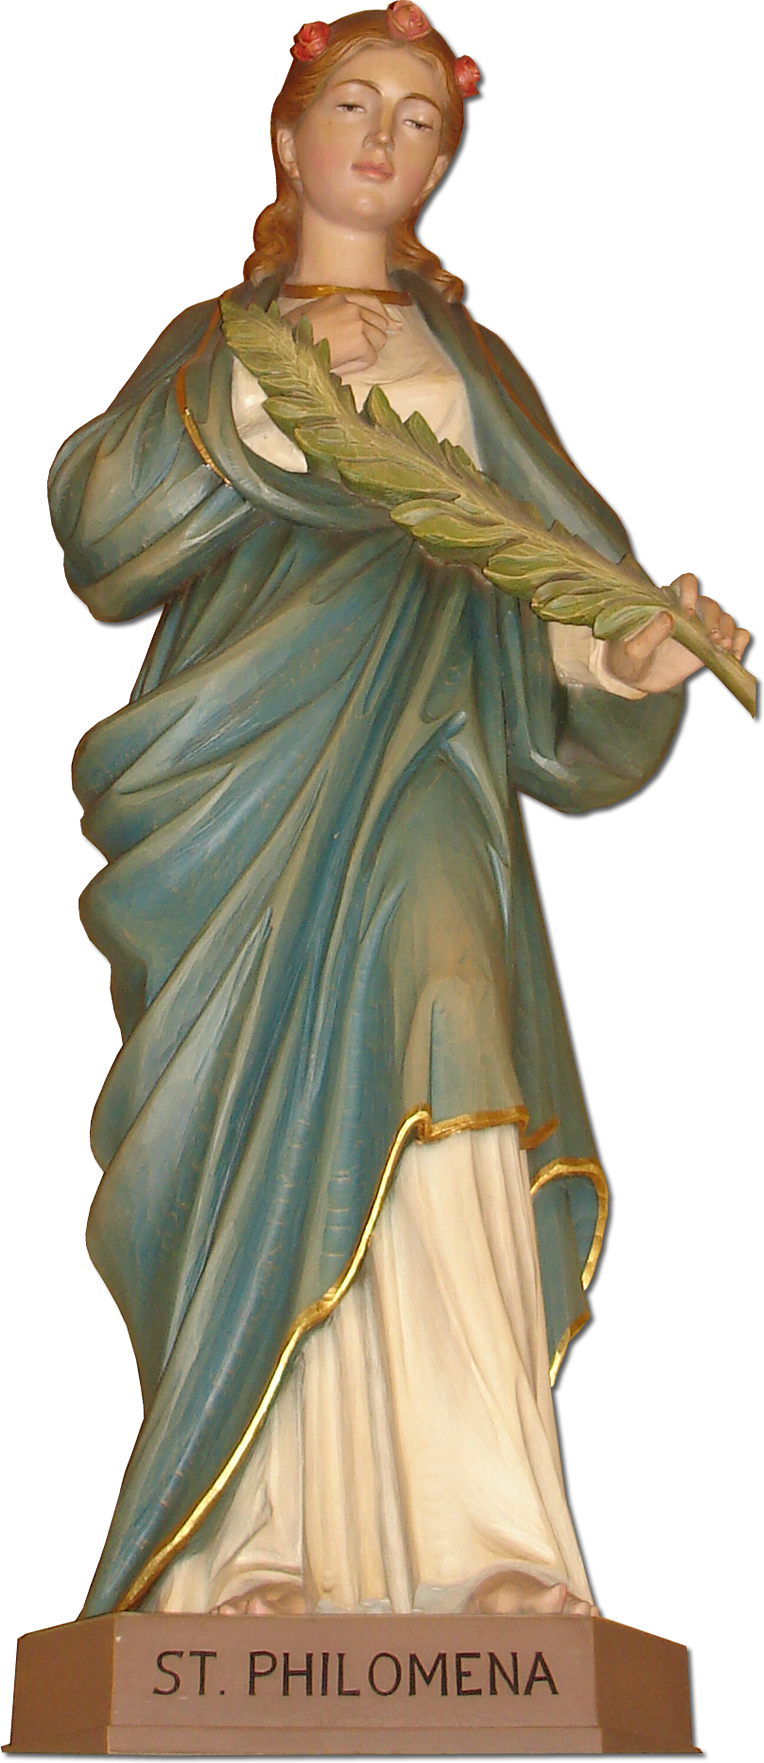 Saint Philomena Statue in Saint Philomena's Parish Church, Detroit, Michigan, United States.